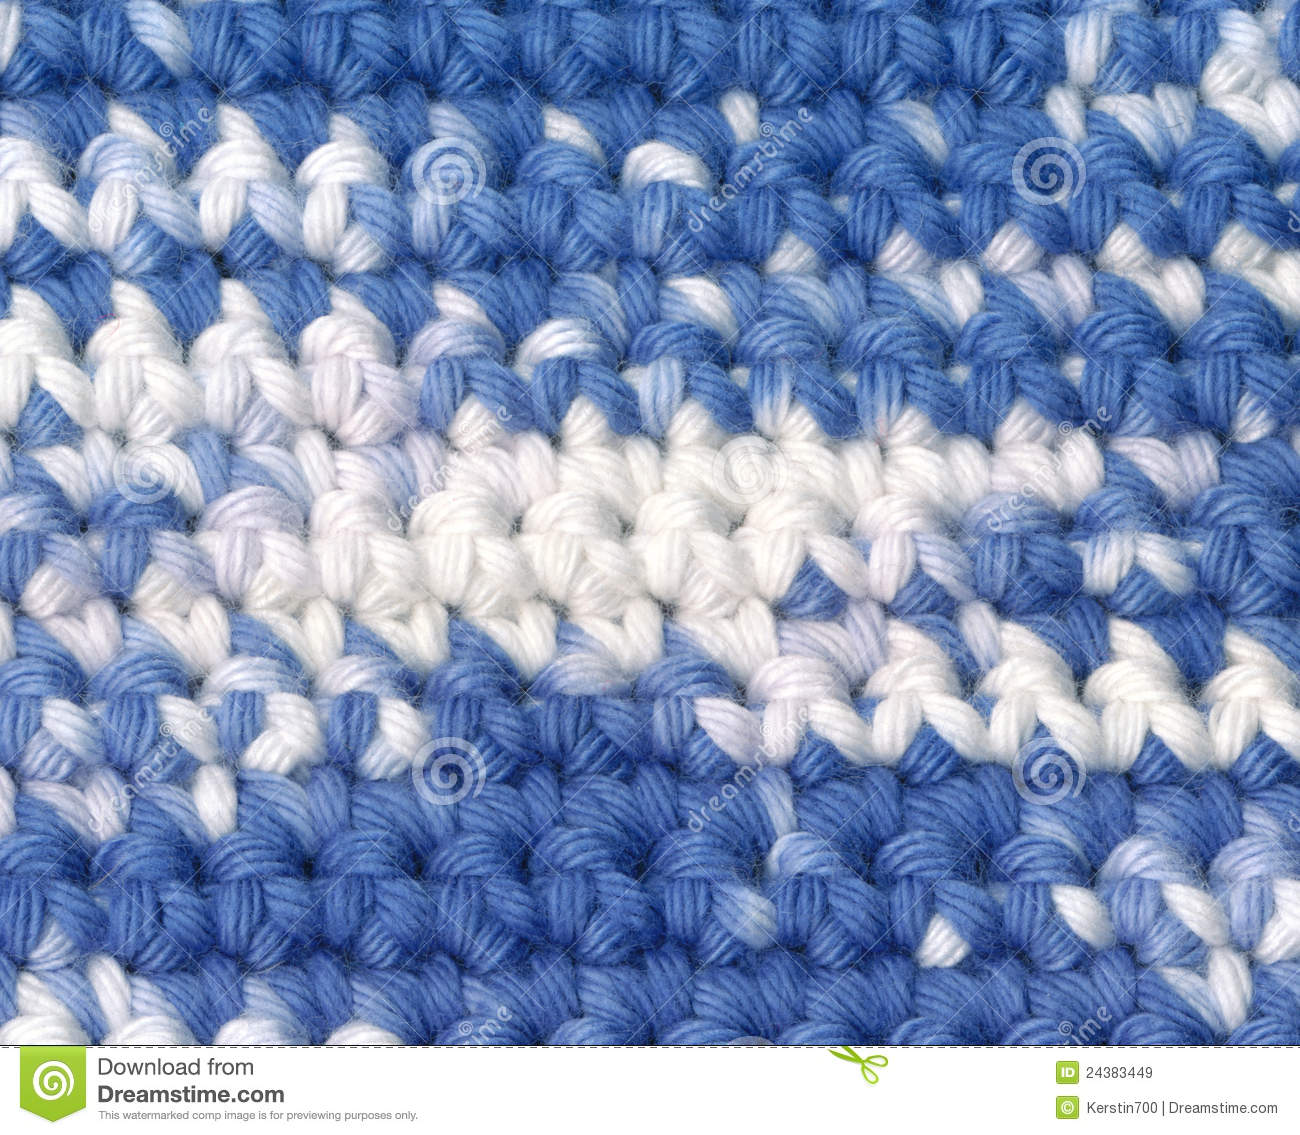 Background Crochet Variegated Yarn Stock Image Image Of Yarn